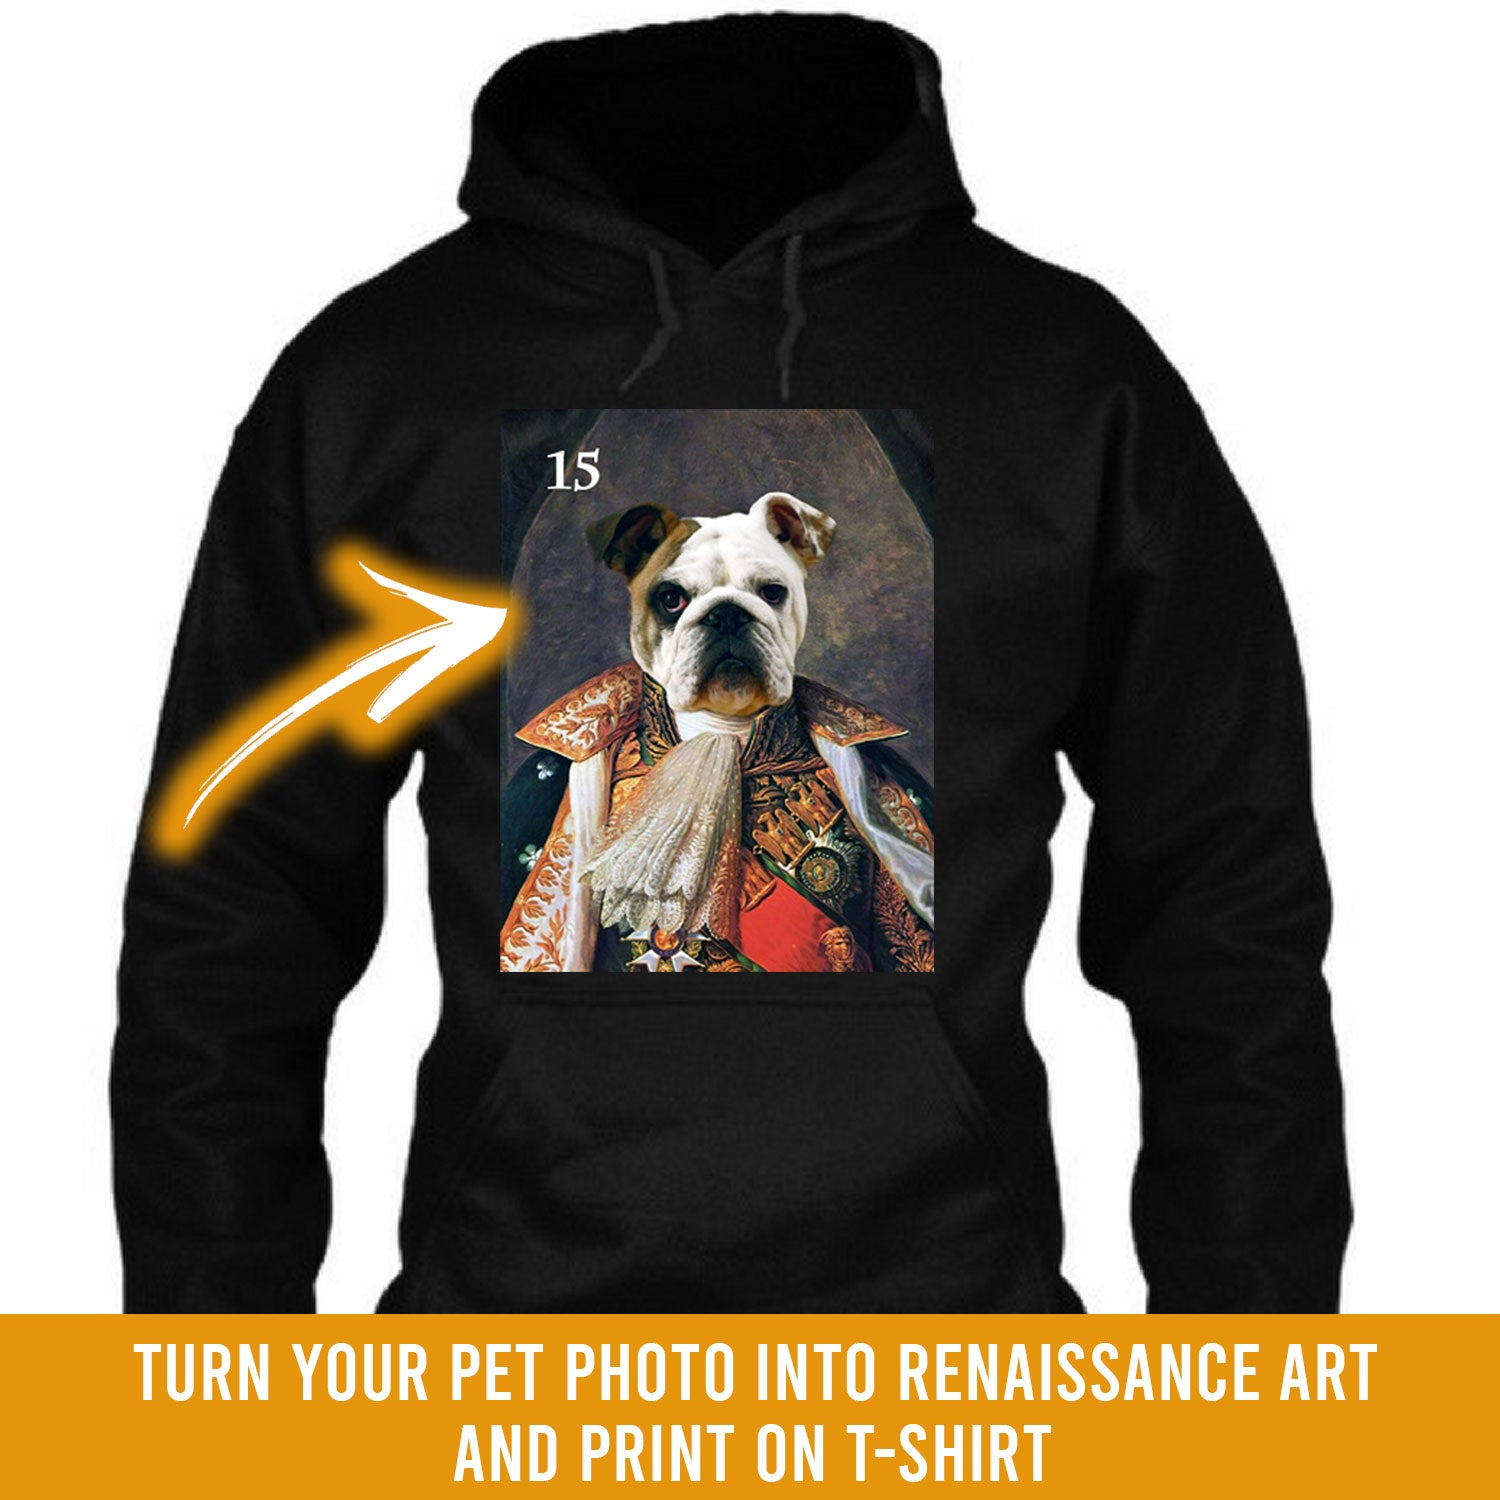 Renaissance historical M-15 male pet portrait